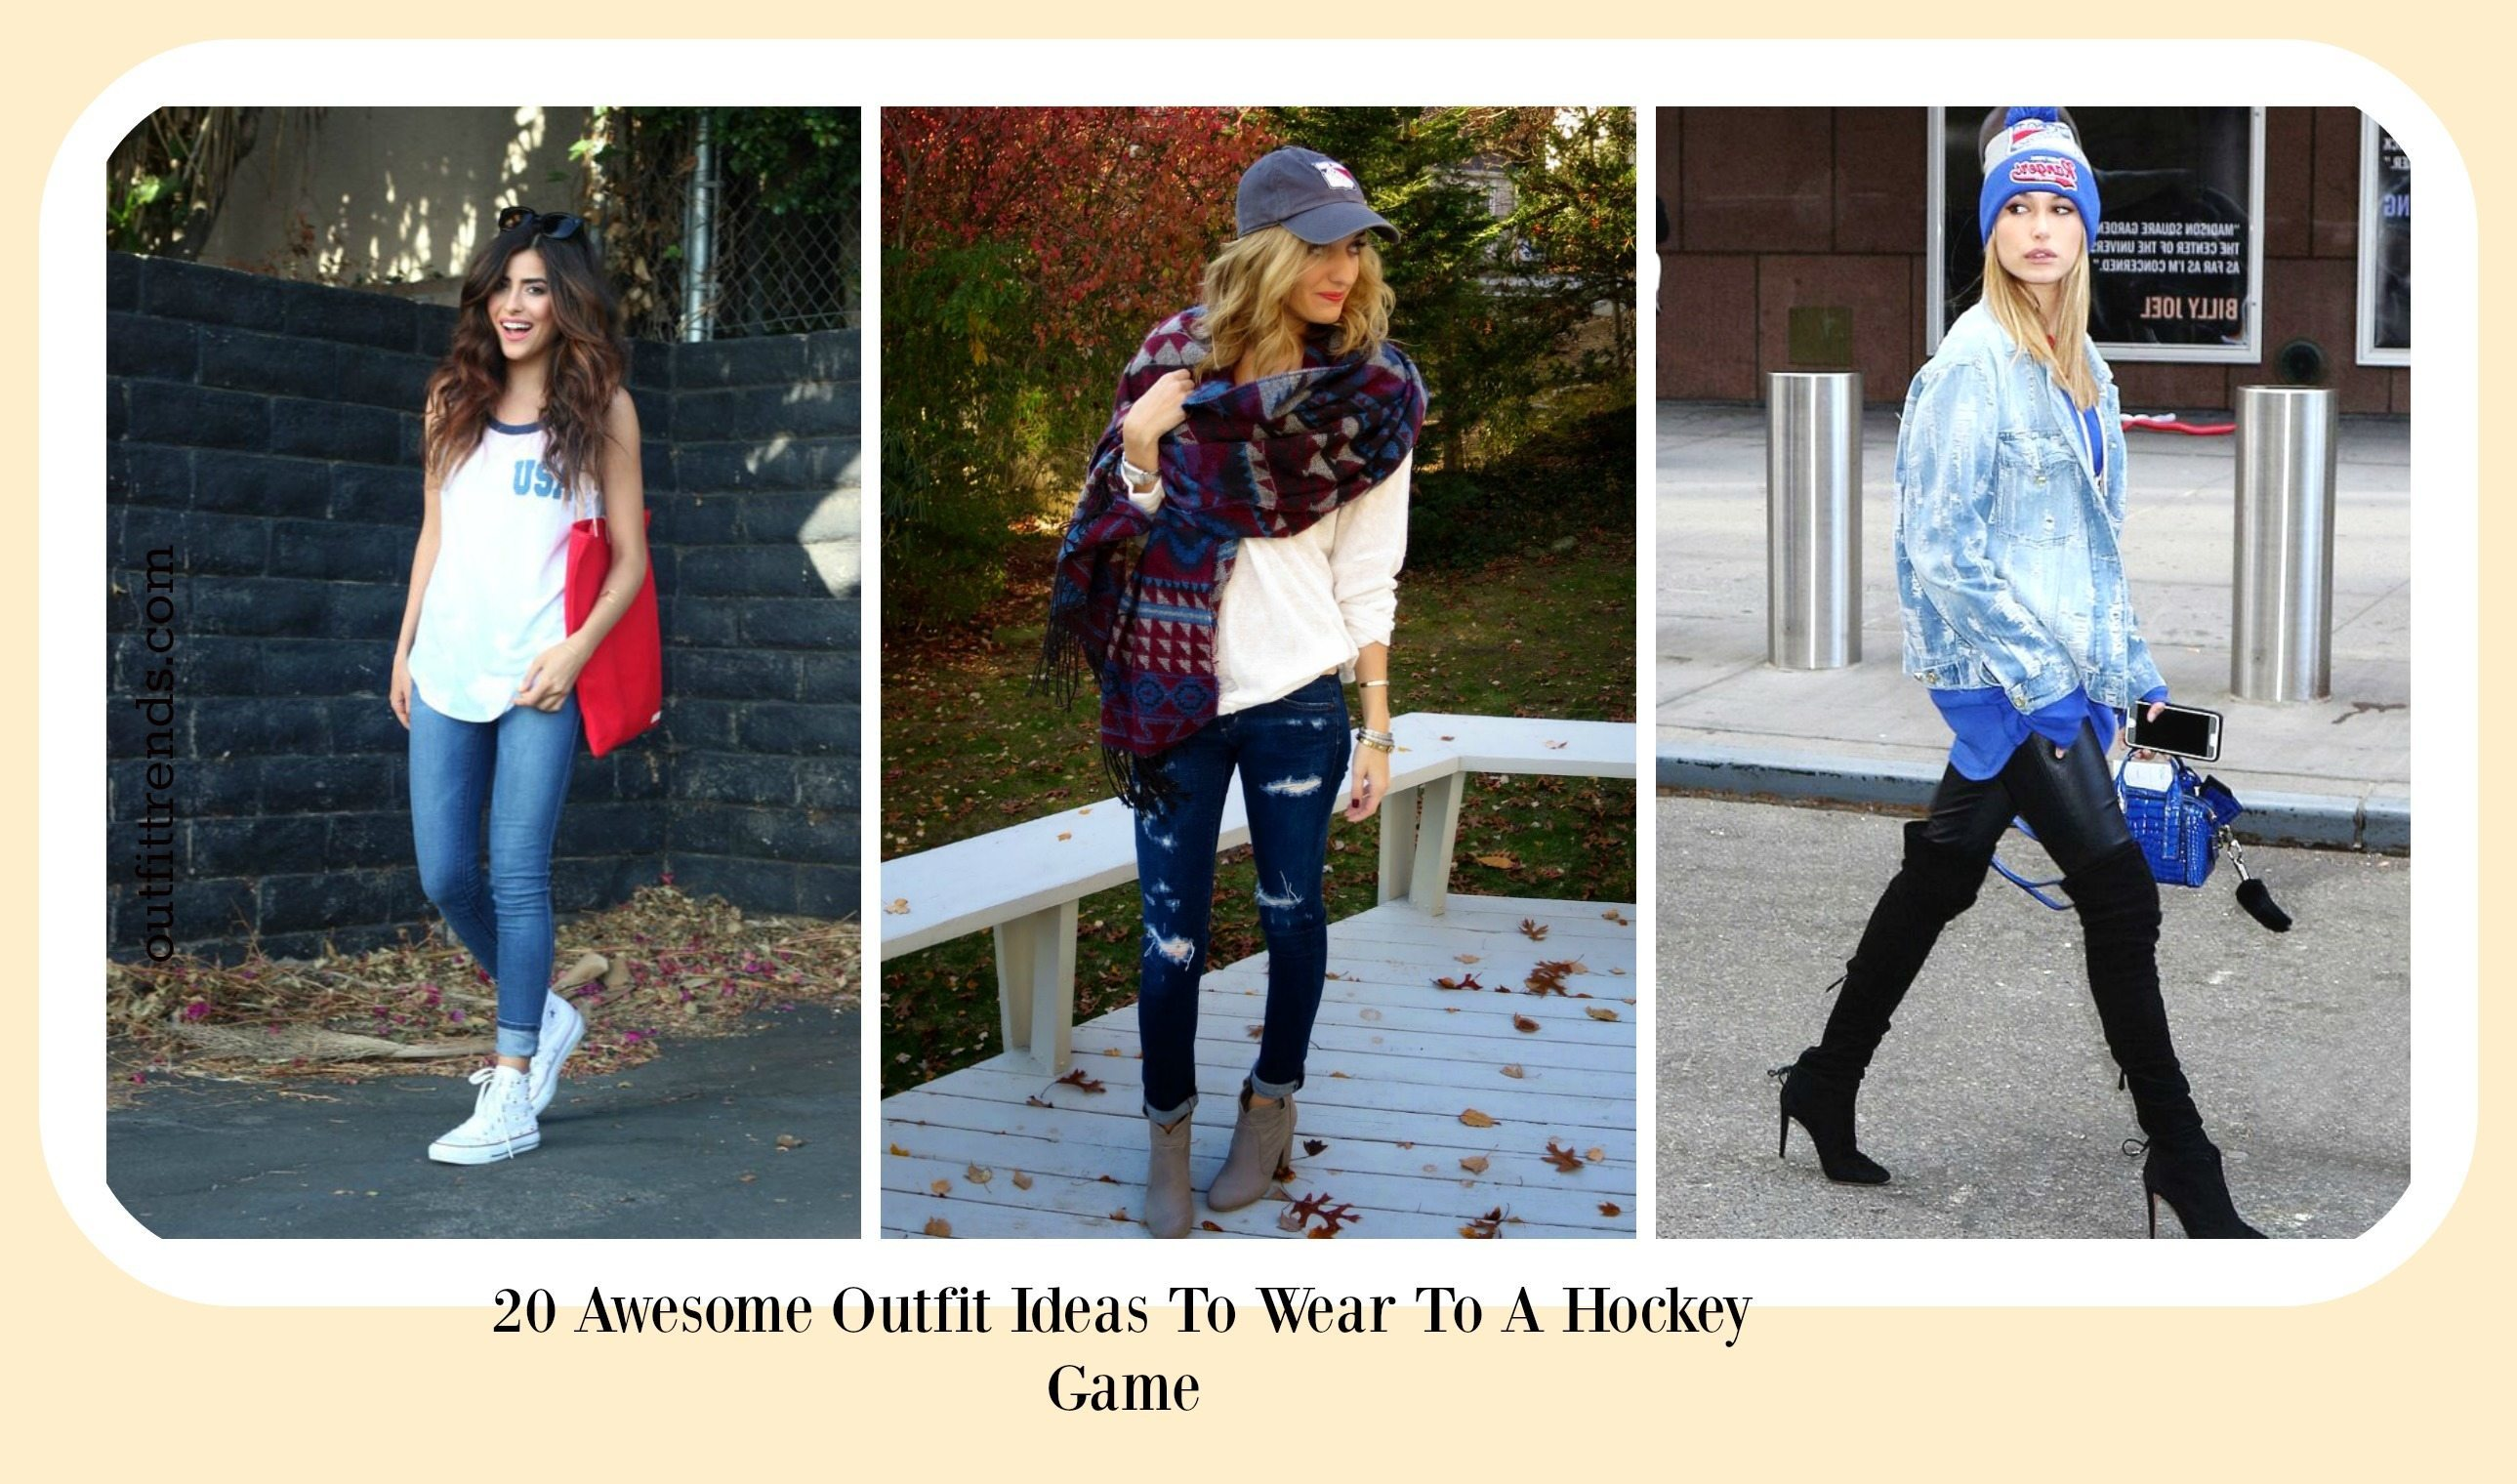 Hockey Game Outfits- 17 Ideas For What To Wear To A Hockey Game